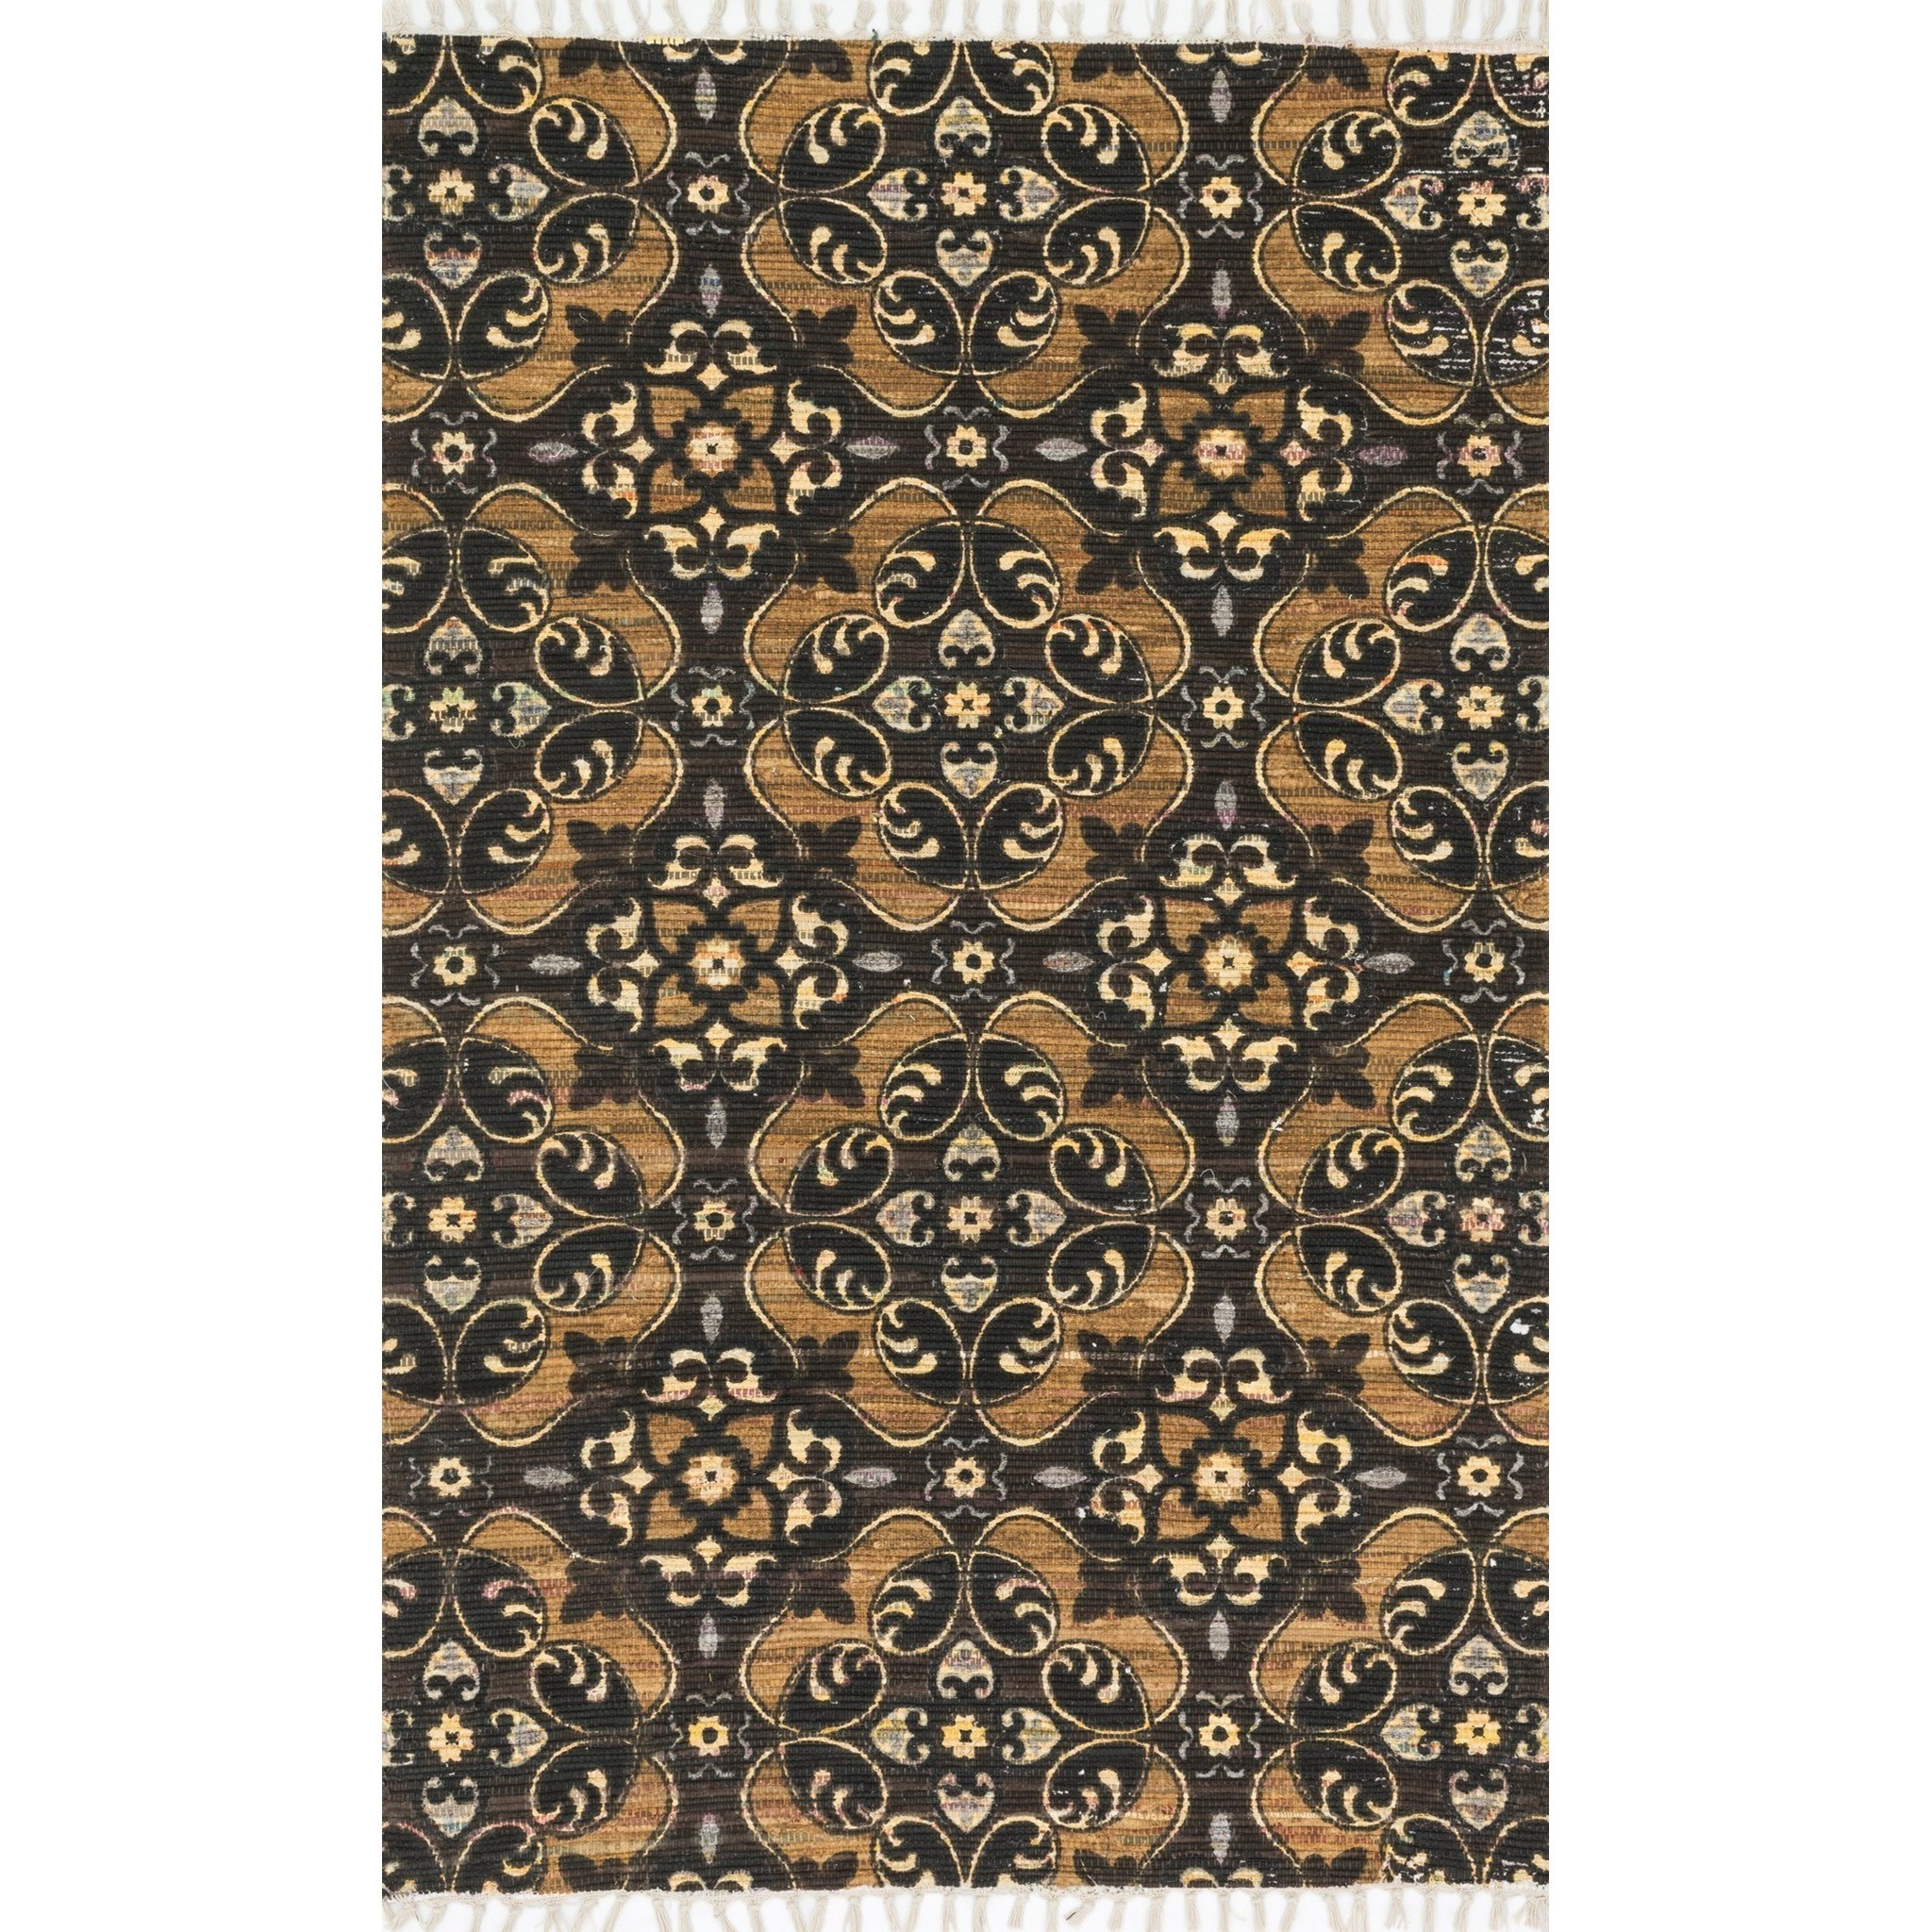 "Aria 3'-6"" x 5'-6"" Area Rug by Loloi Rugs at Virginia Furniture Market"